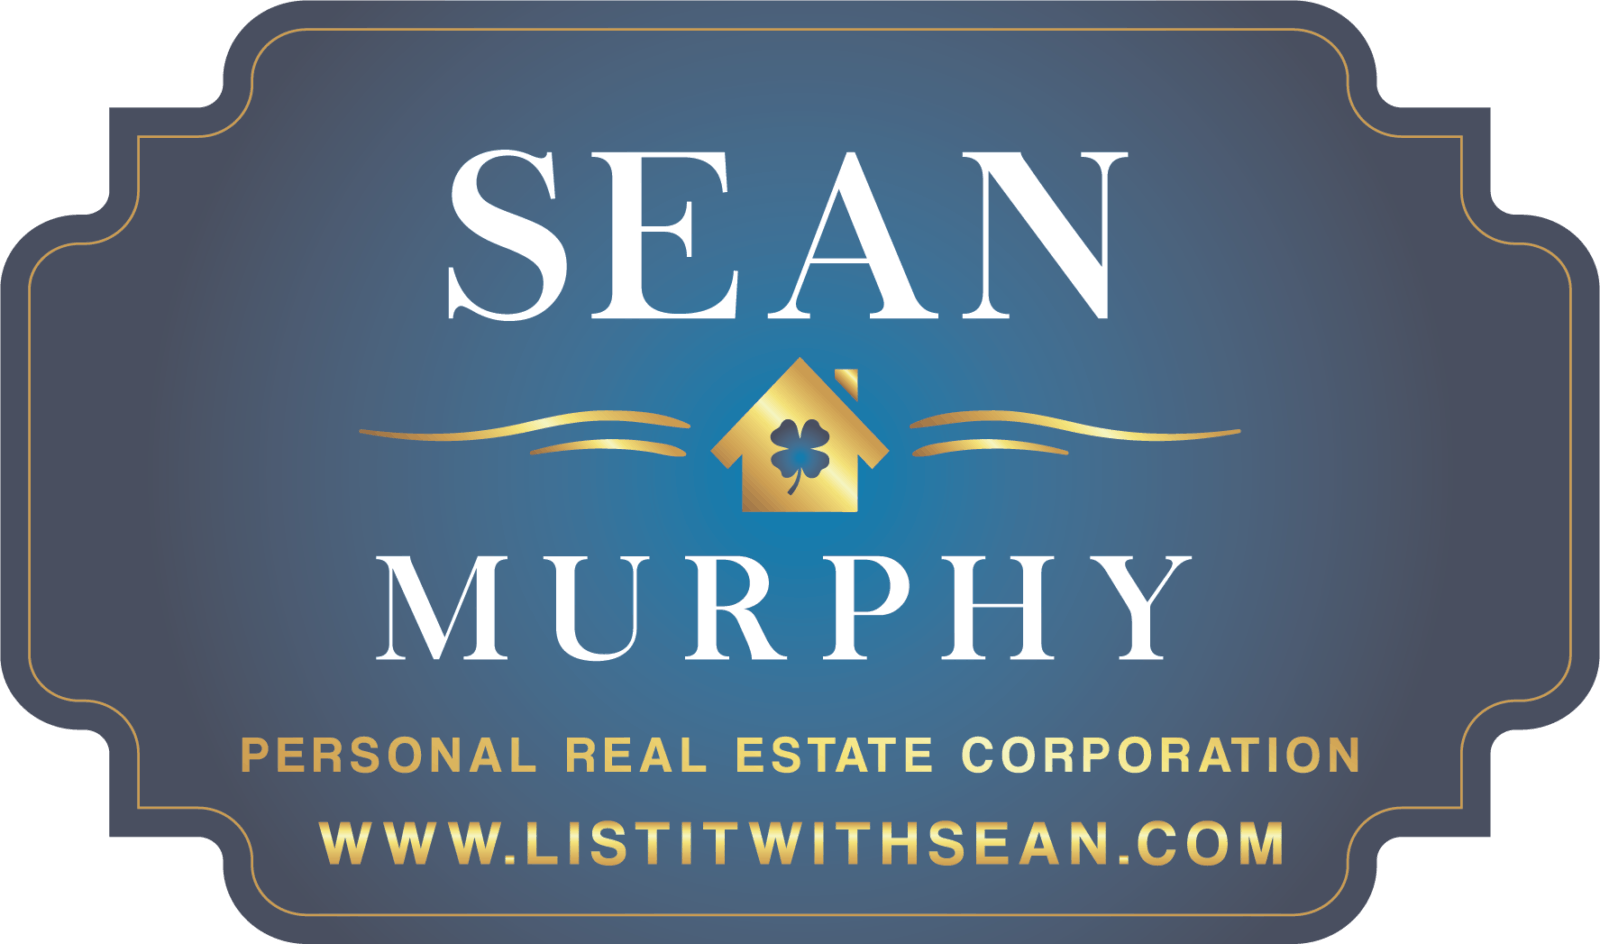 Sean Murphy, Personal Real Estate Corporation